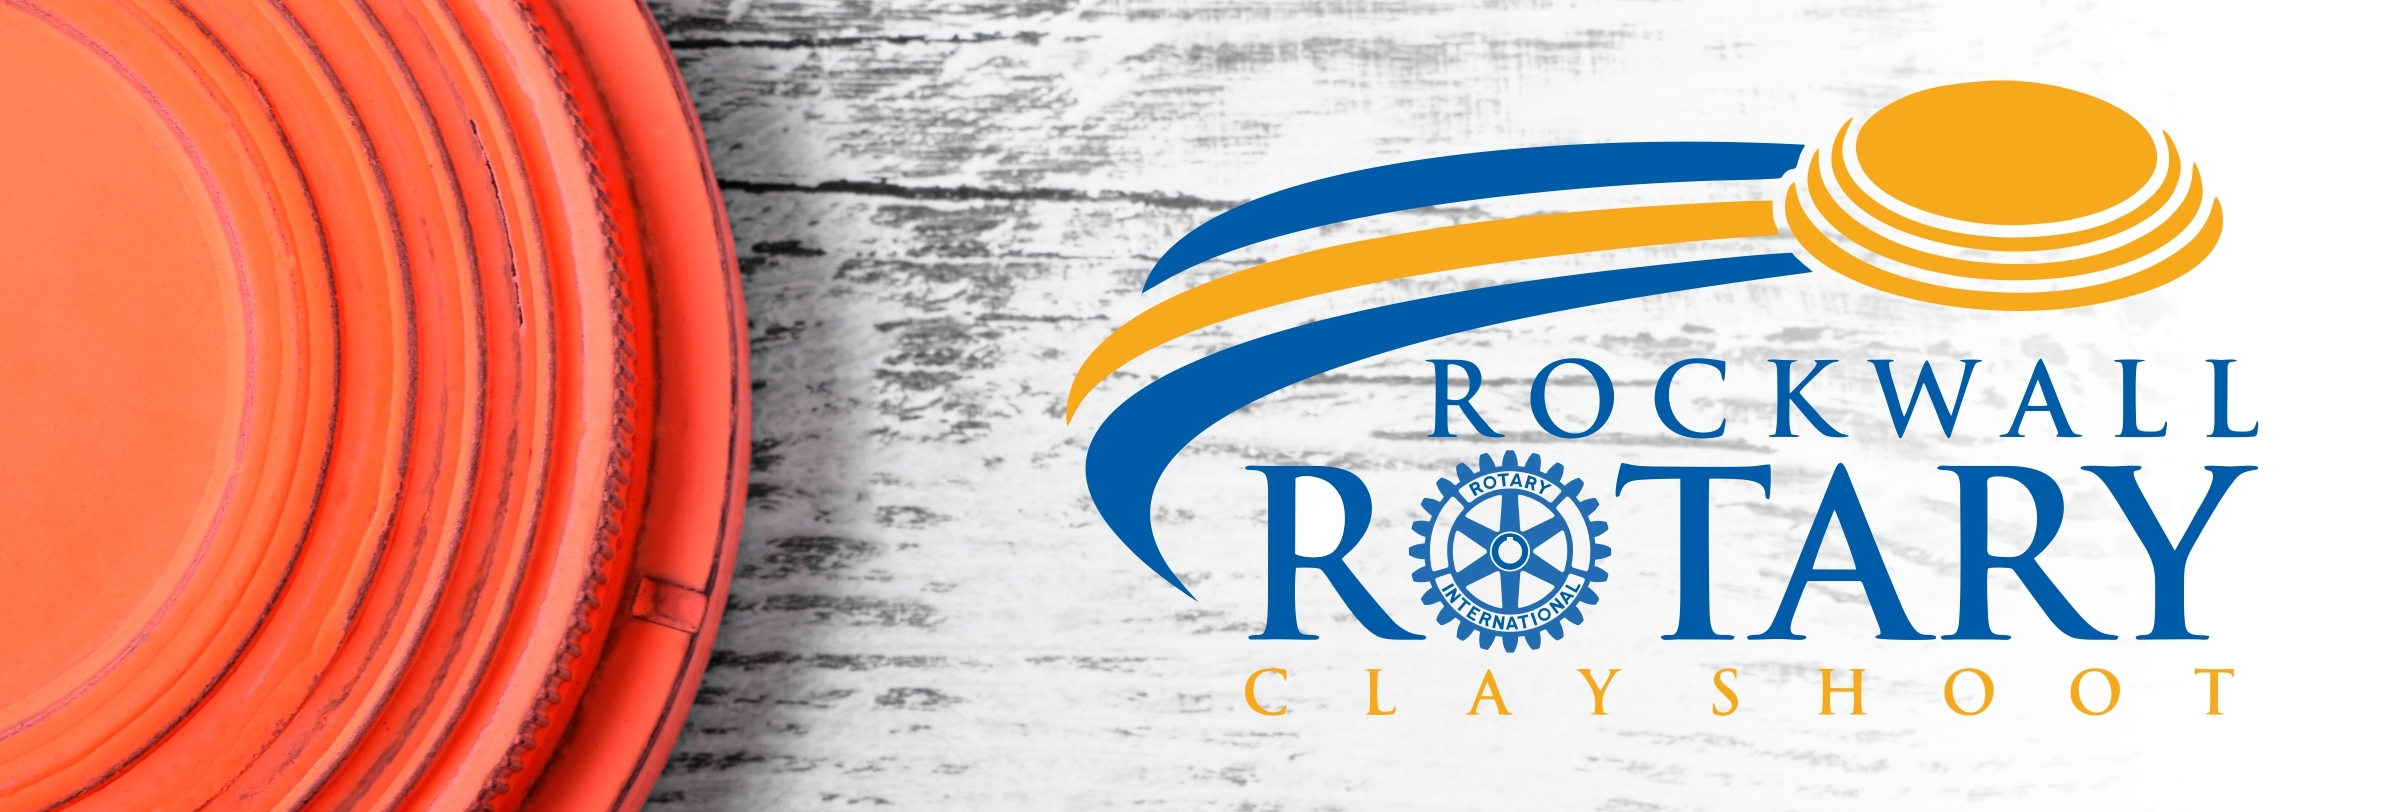 Teams forming for Rockwall Rotary Club Clay Shoot, supporting local scholarships